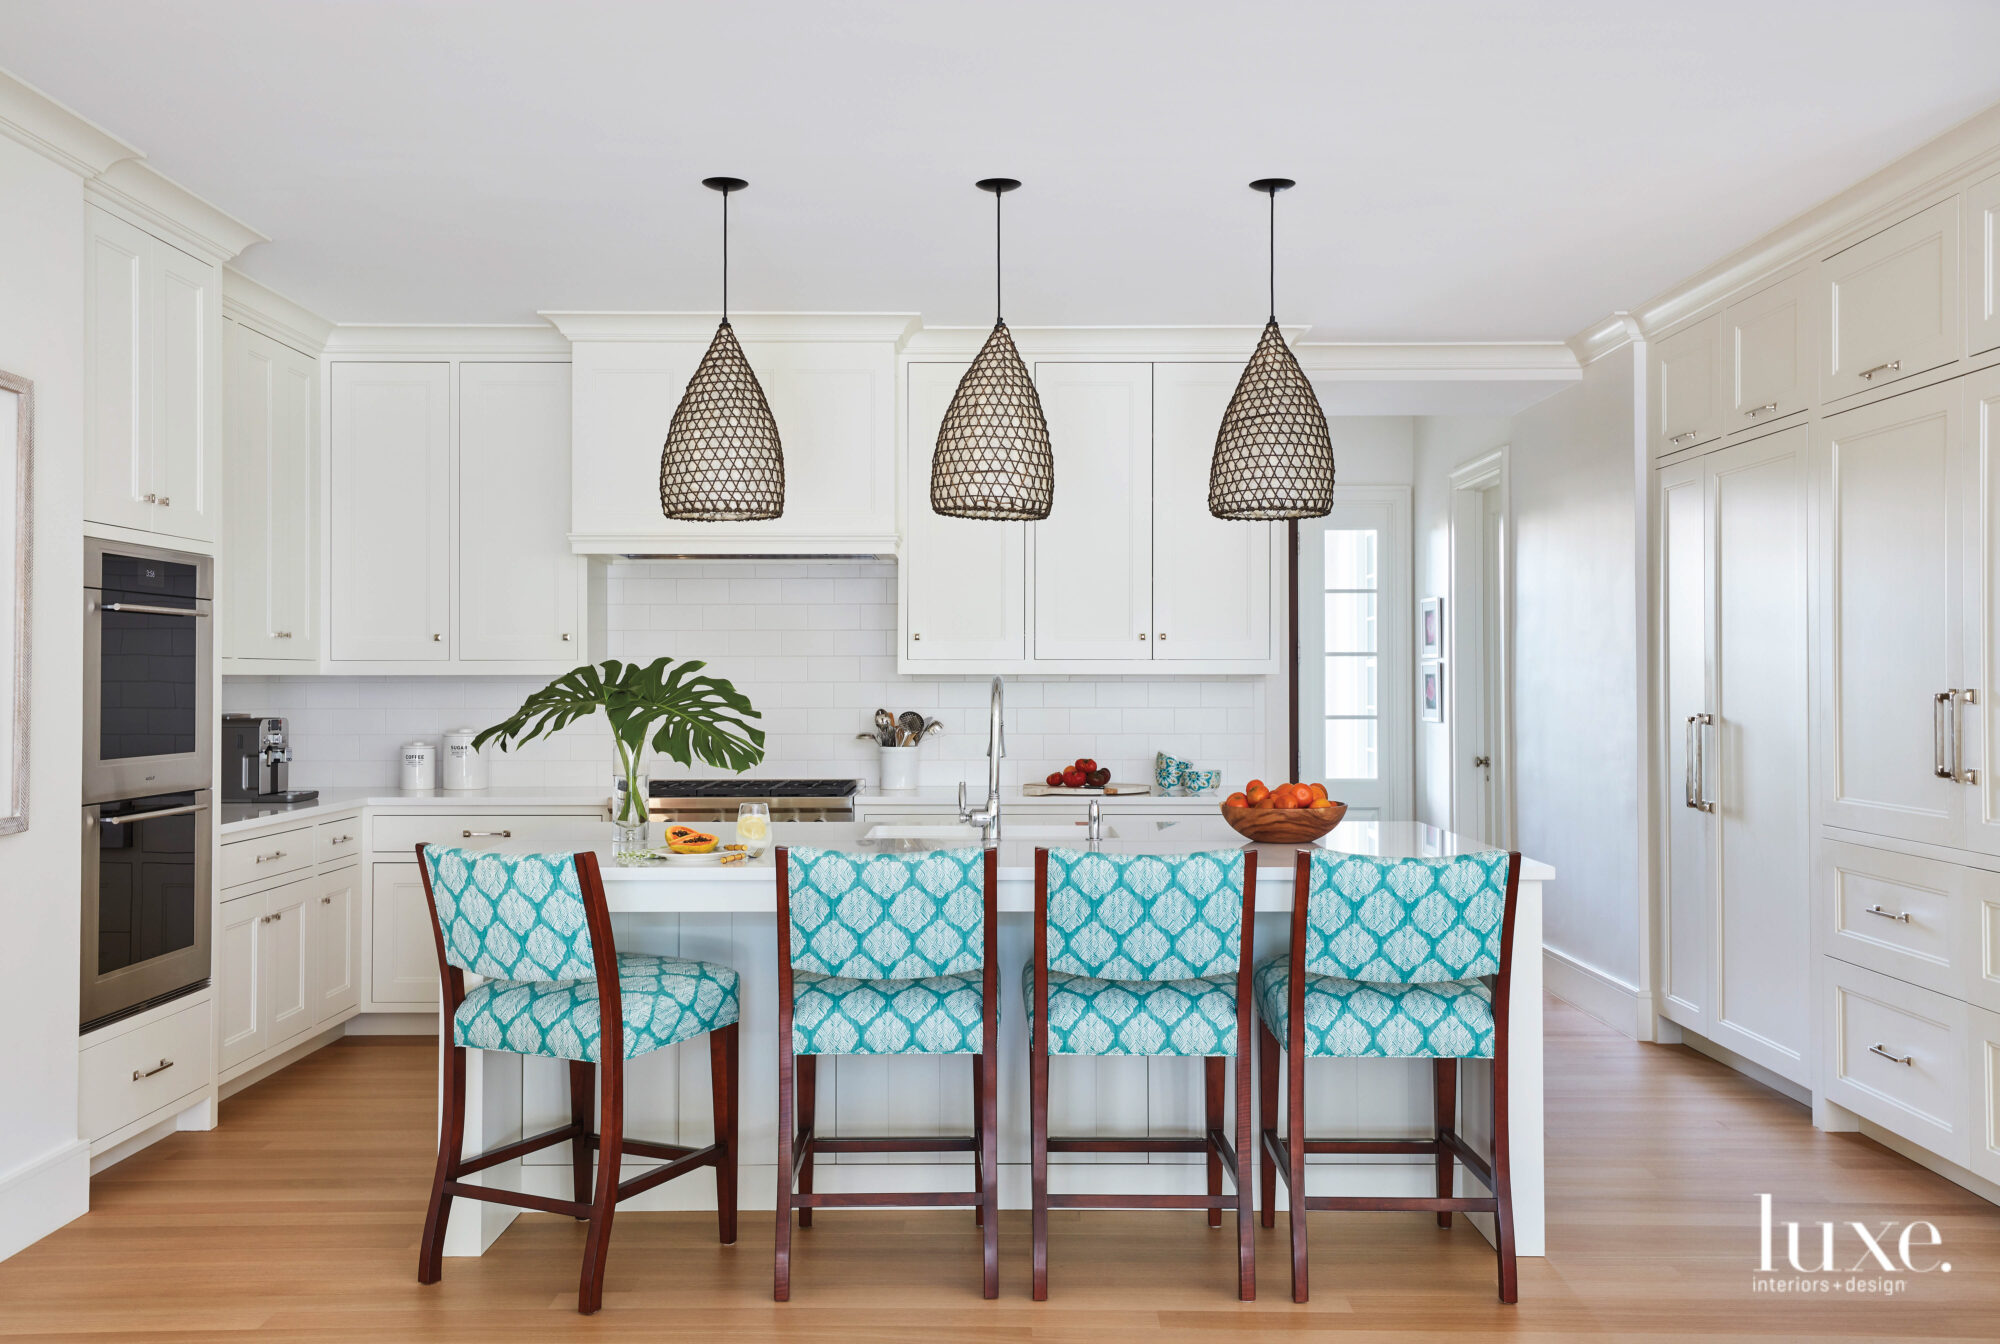 Kitchen with white cabinetry and barstools upholstered in a bright blue patterned fabric.